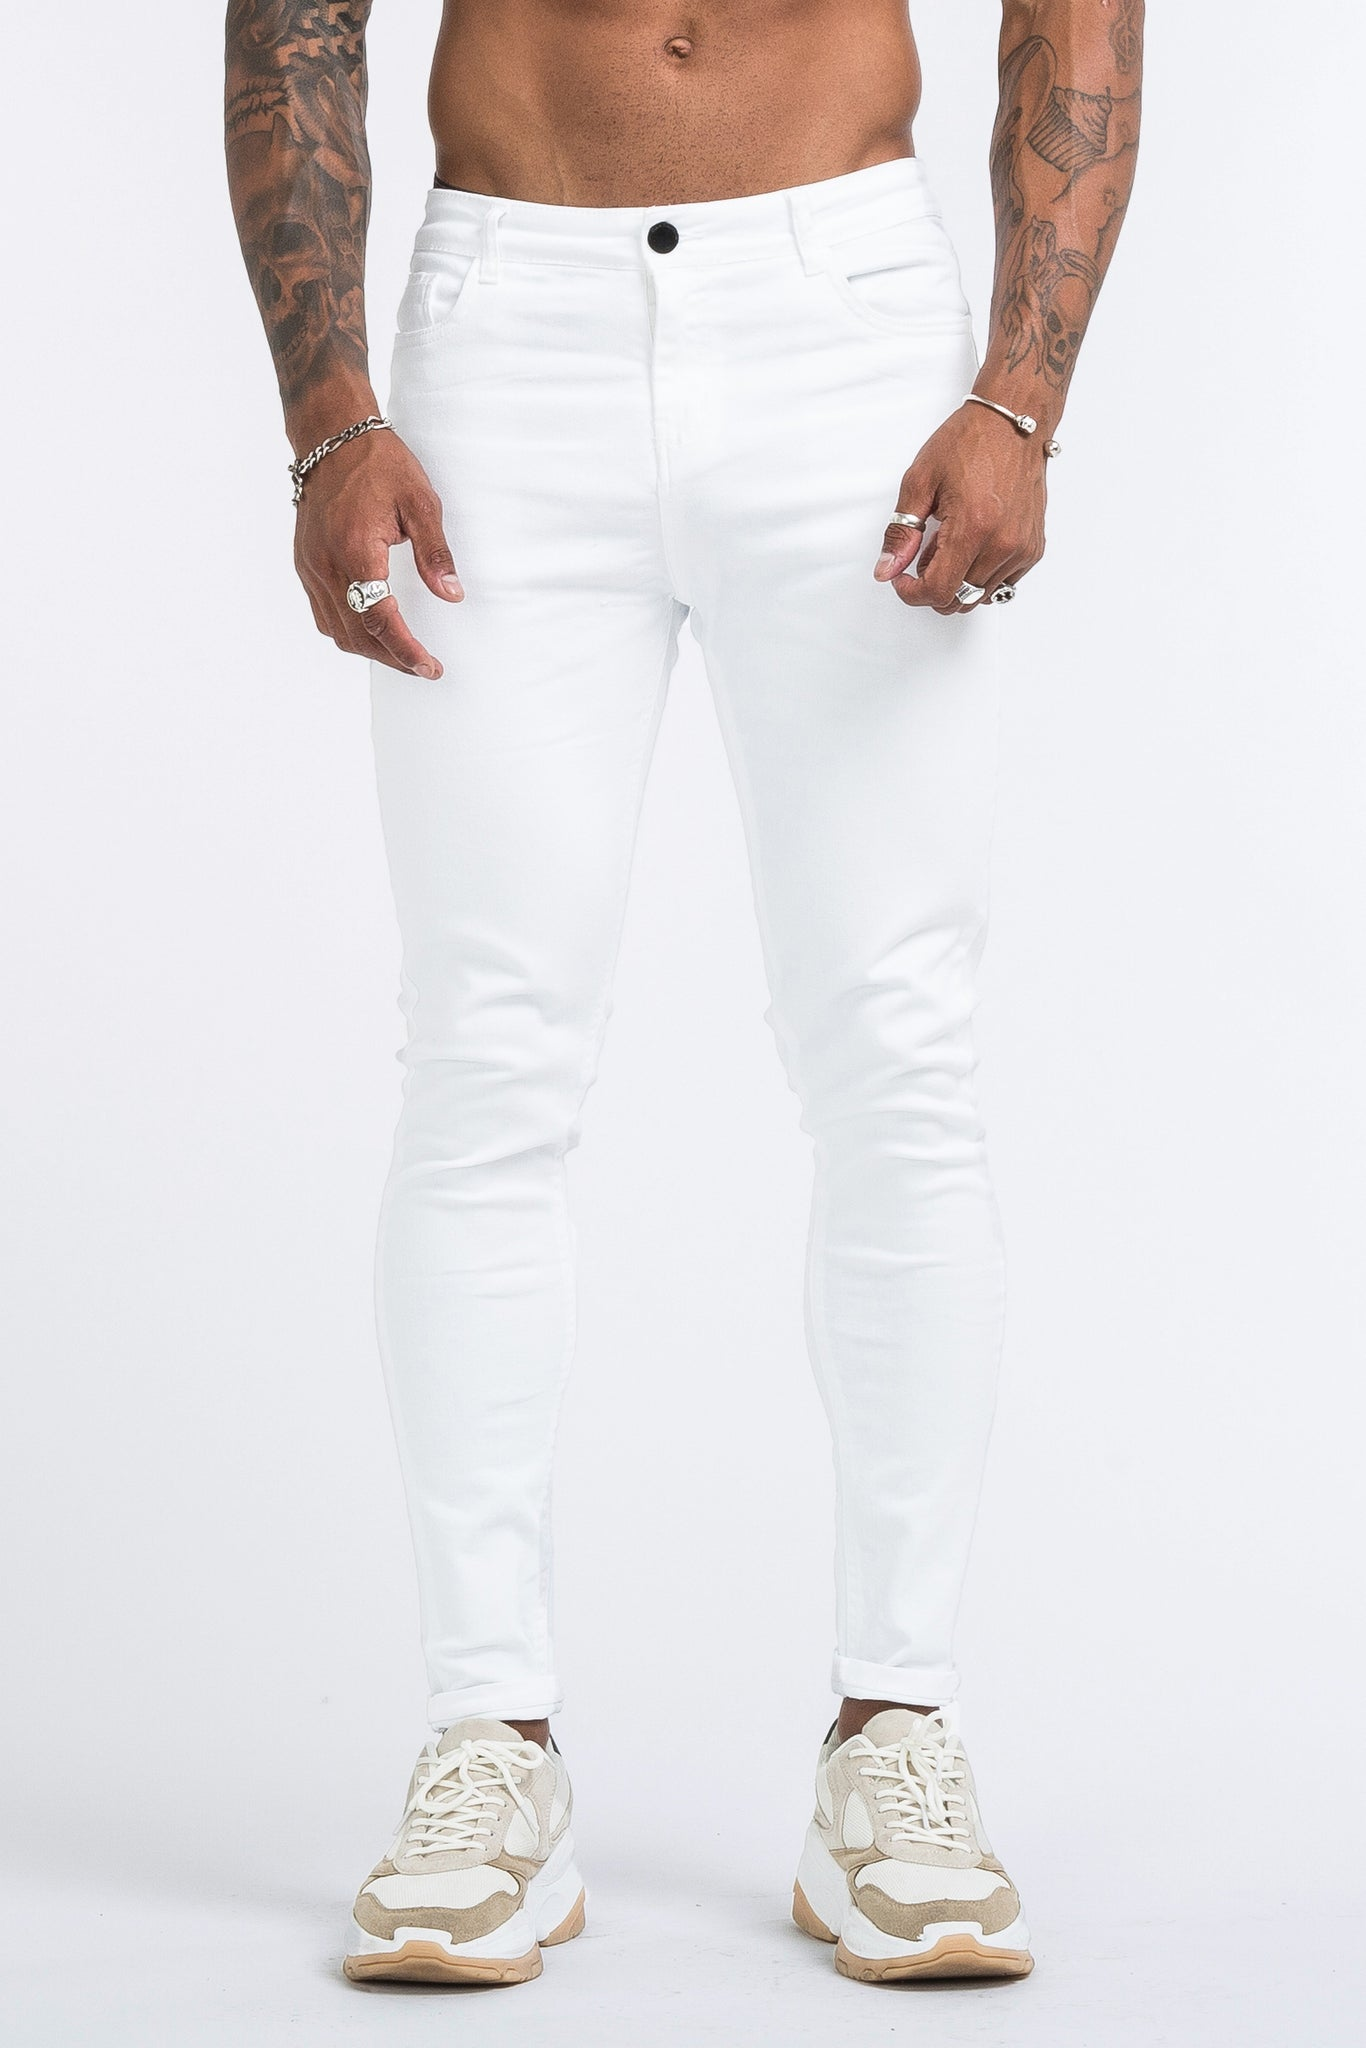 THE LORENZO JEANS - WHITE - ICON. AMSTERDAM